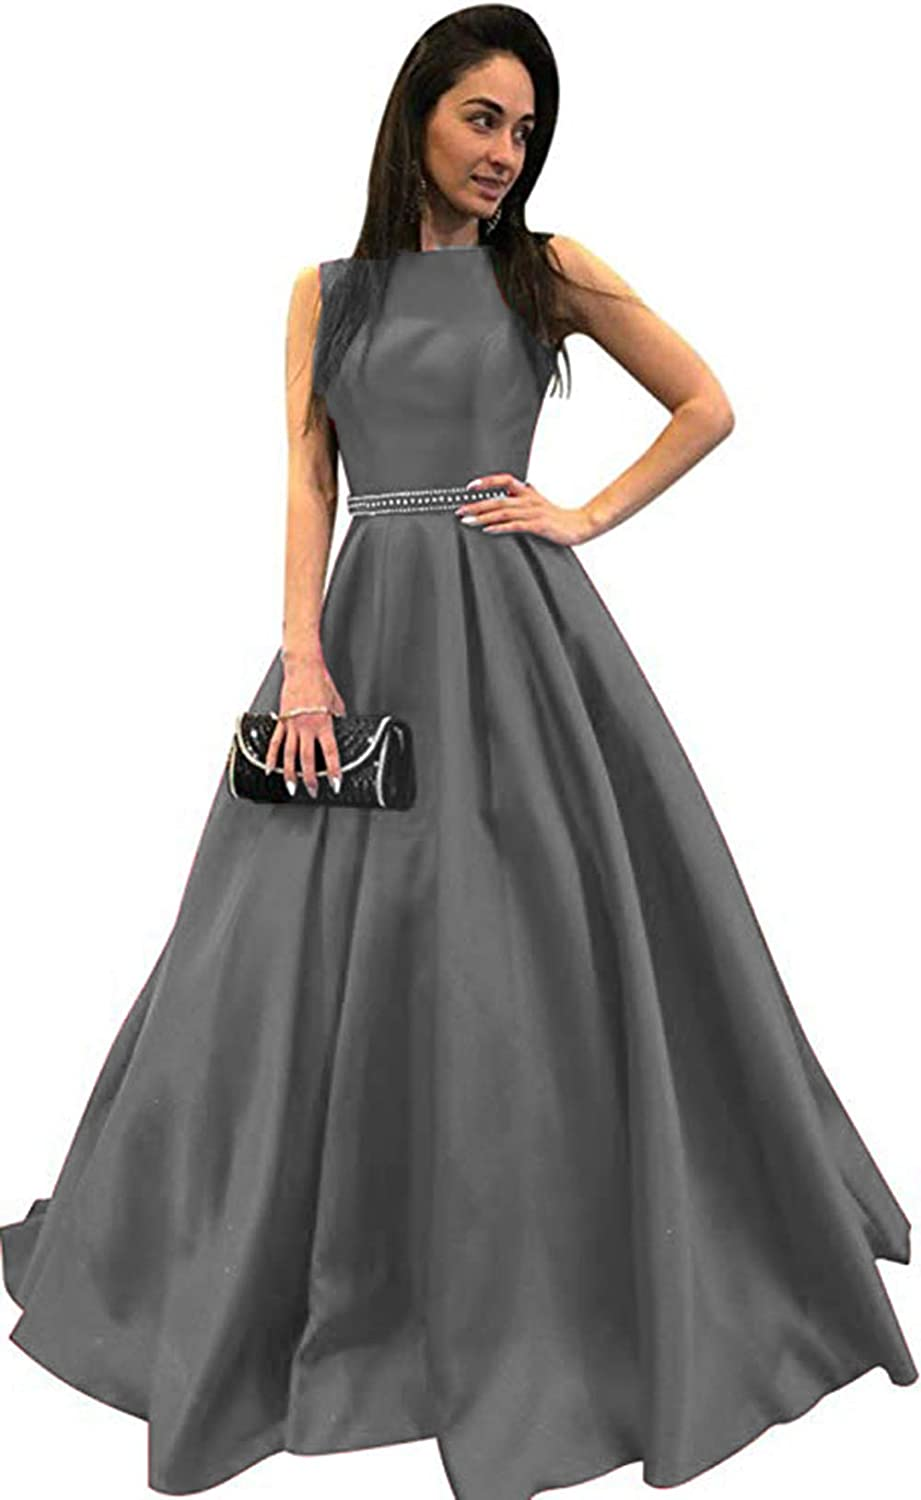 Ri Yun Womens Scoop Neck Long Prom Dresses 2019 Backless Beaded ALine Satin Formal Evening Ball Gowns with Pockets